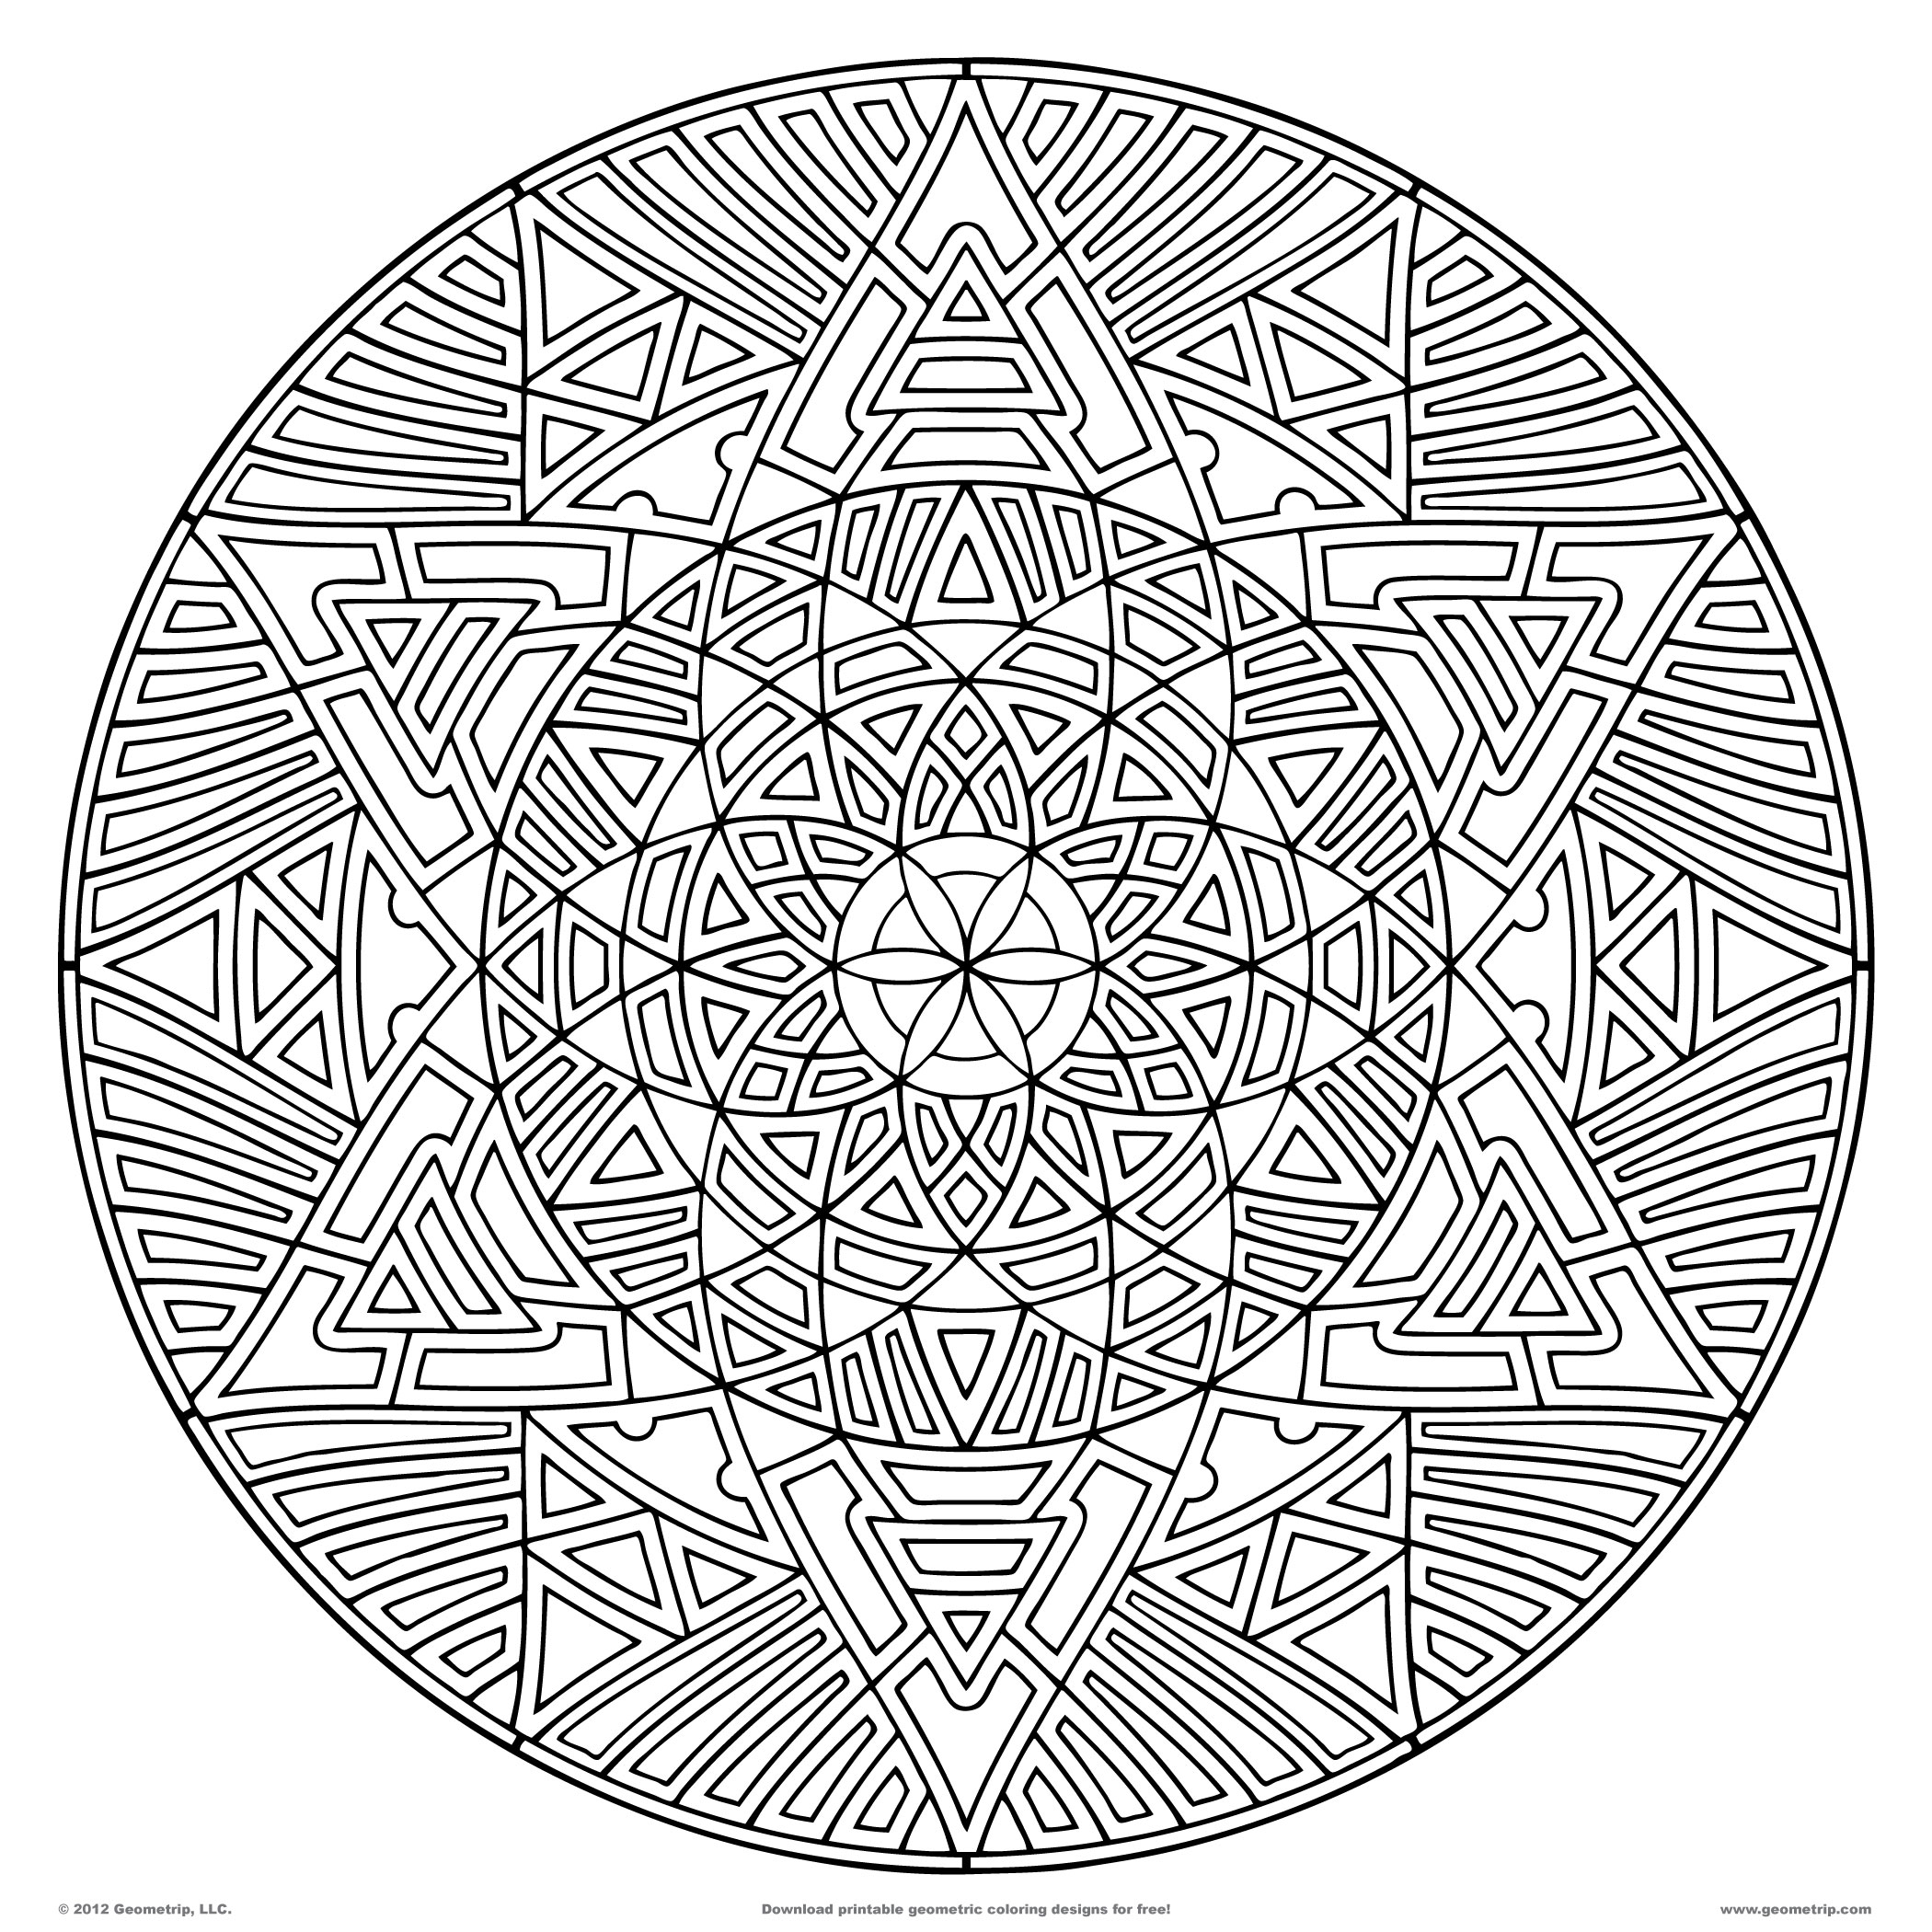 Coloring Pages Pdf : Free difficult ones for adults coloring pages